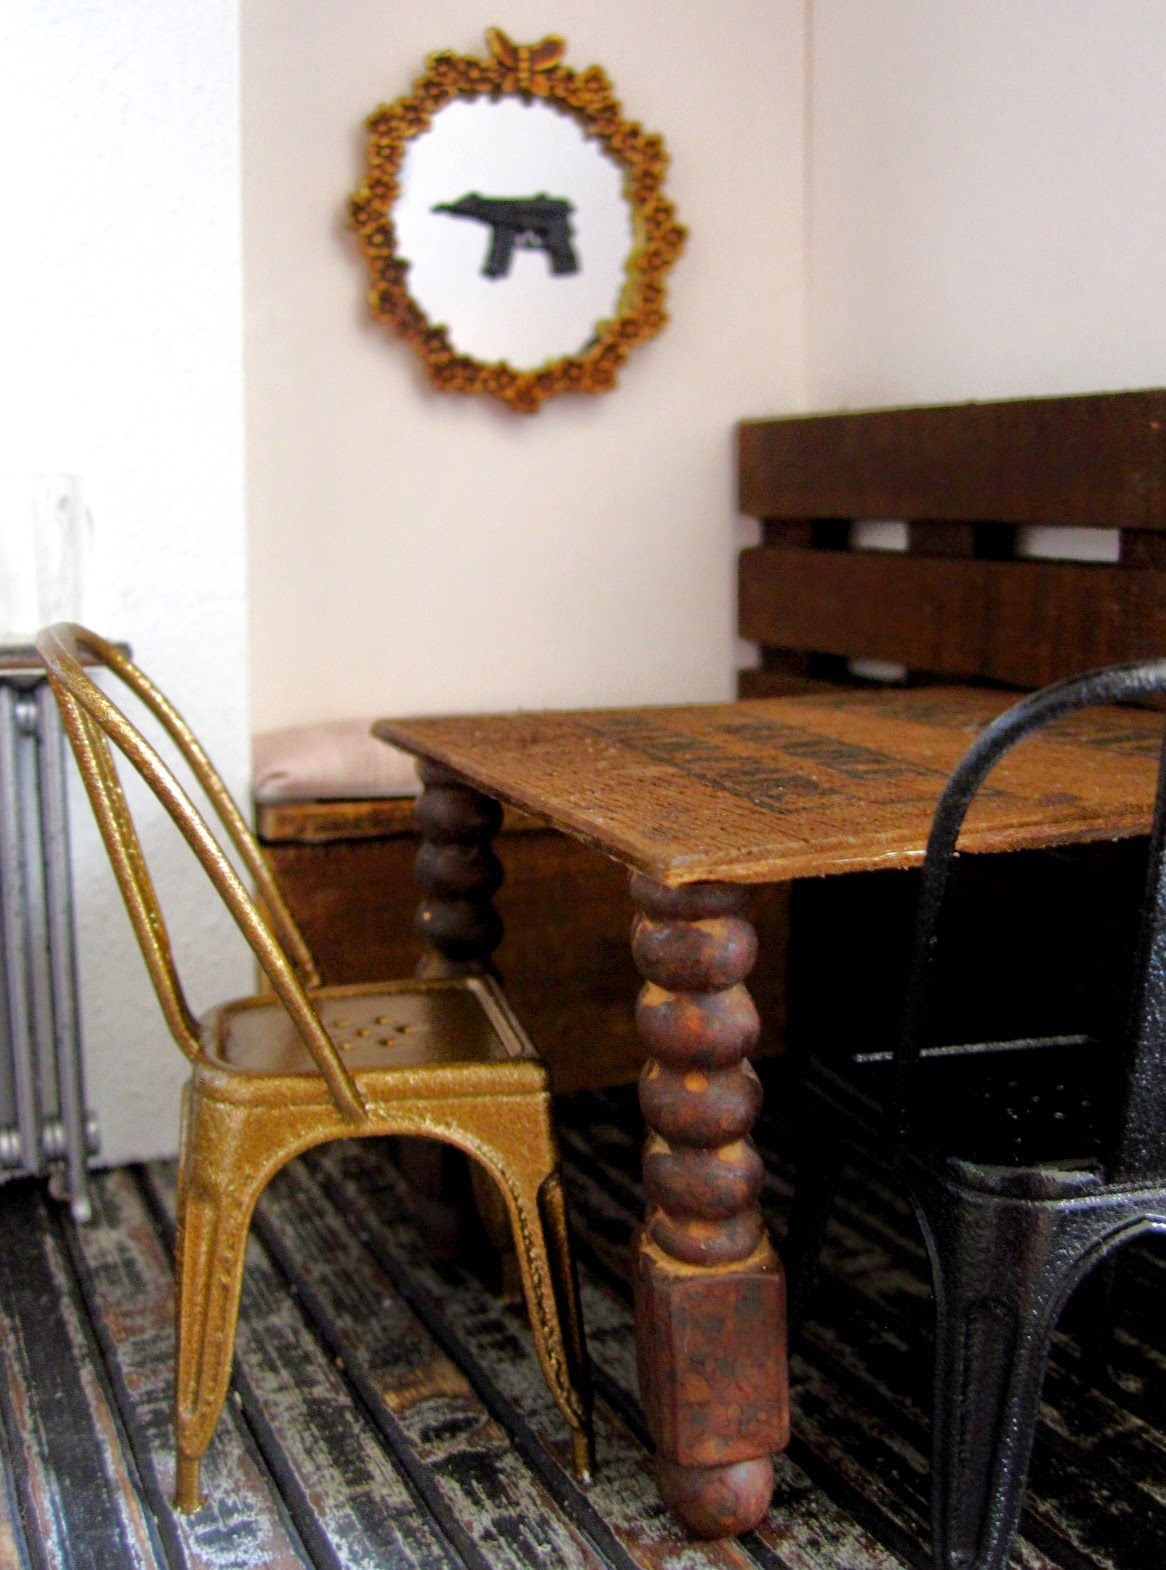 Modern dolls' house miniature cafe table and chairs On the wall is a mirror with a gun attached to it.